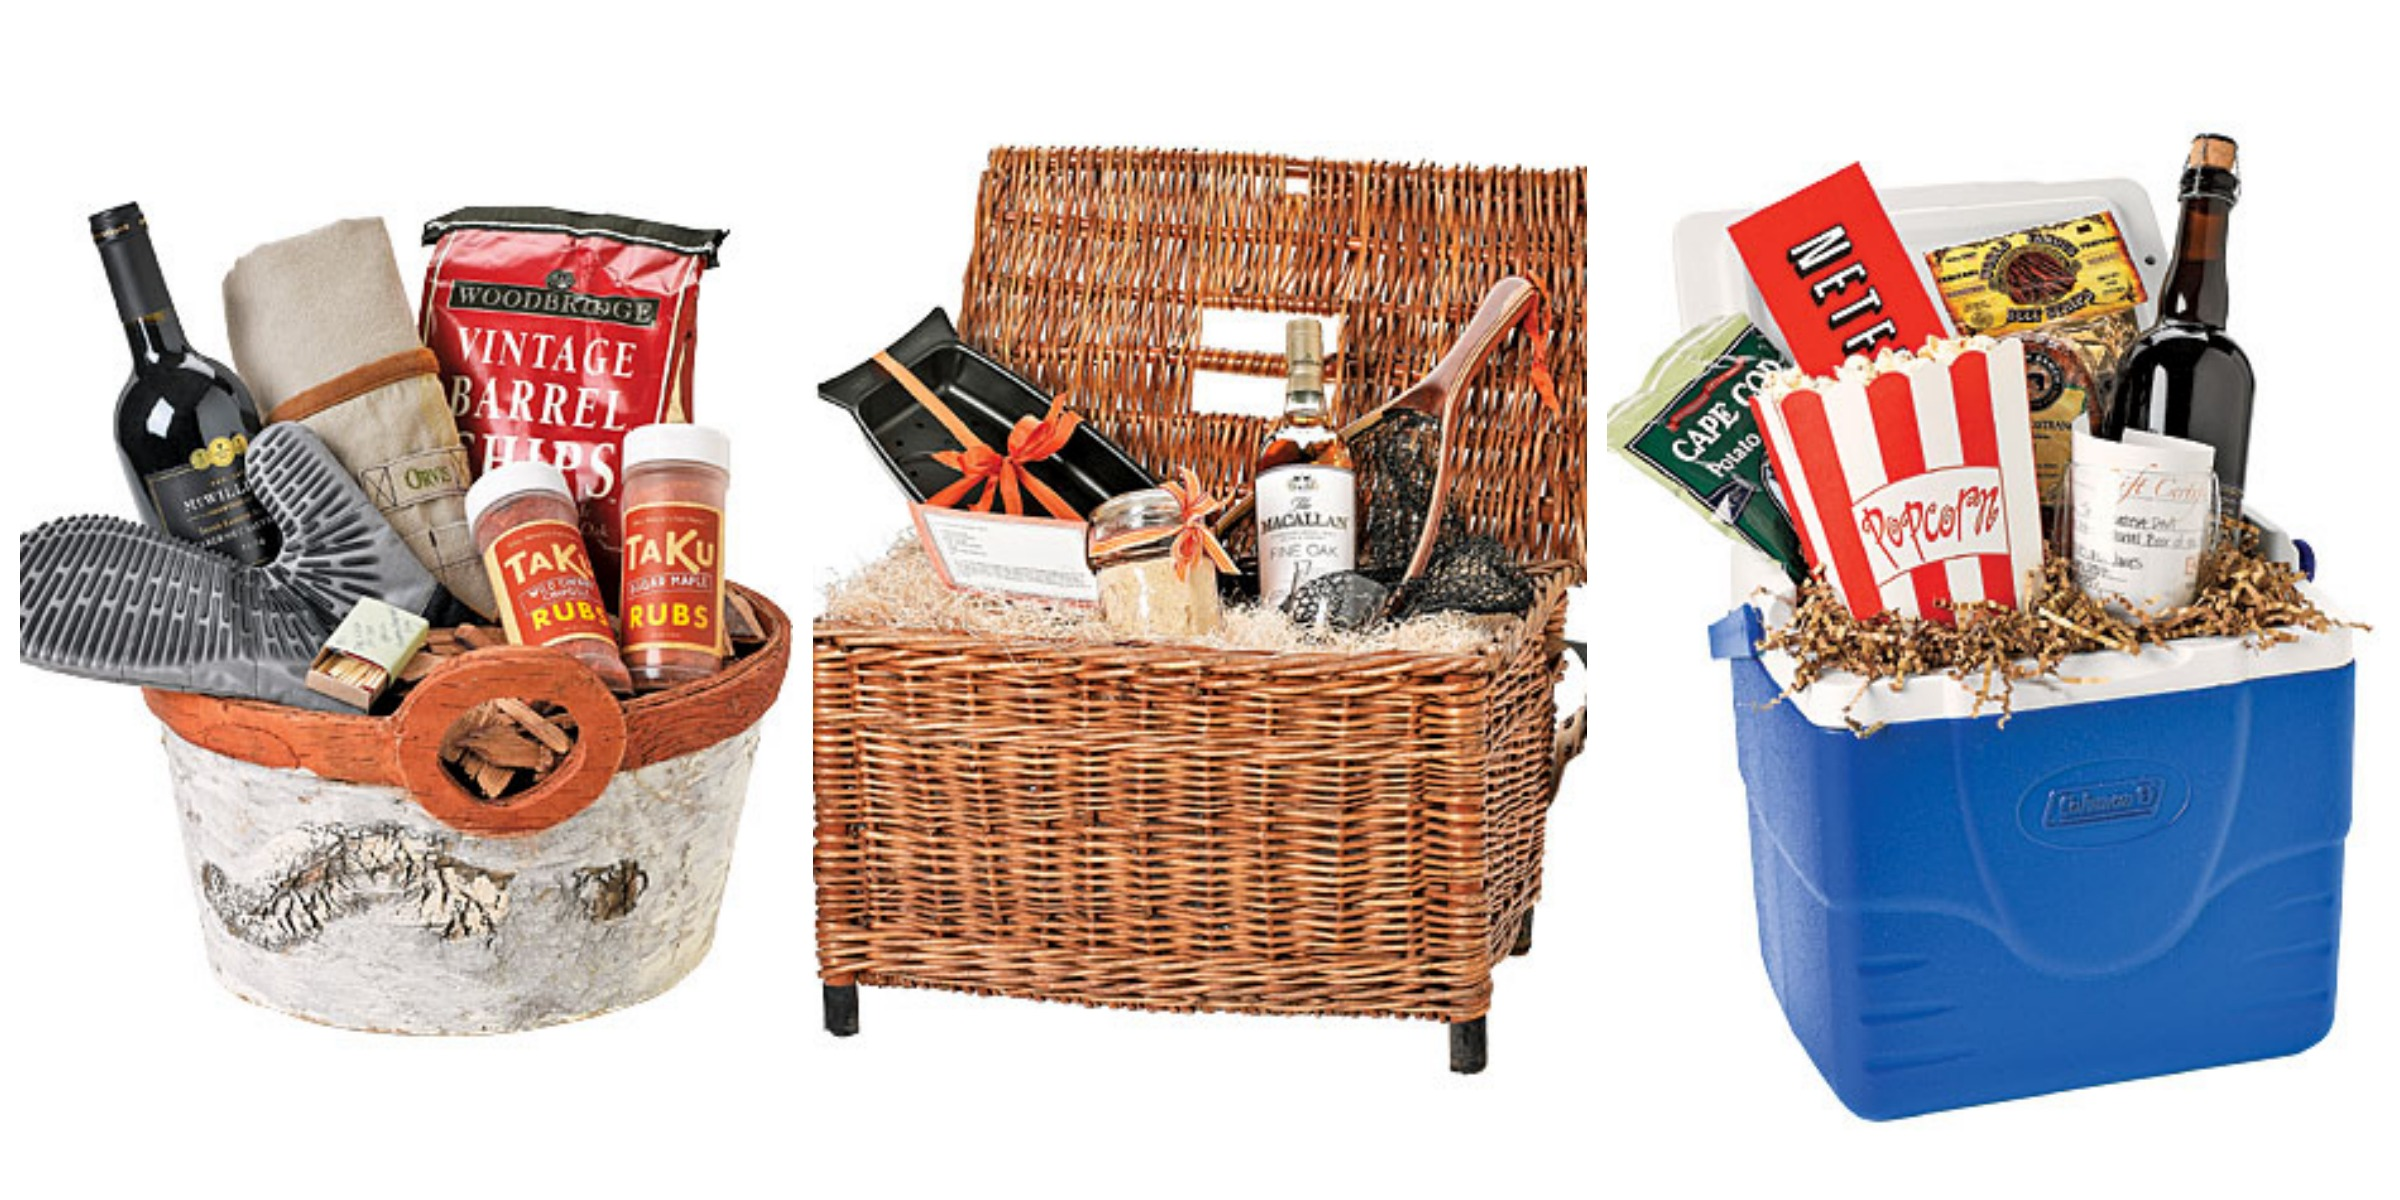 Themes For Gift Baskets: 10 DIY Father's Day Gift Baskets